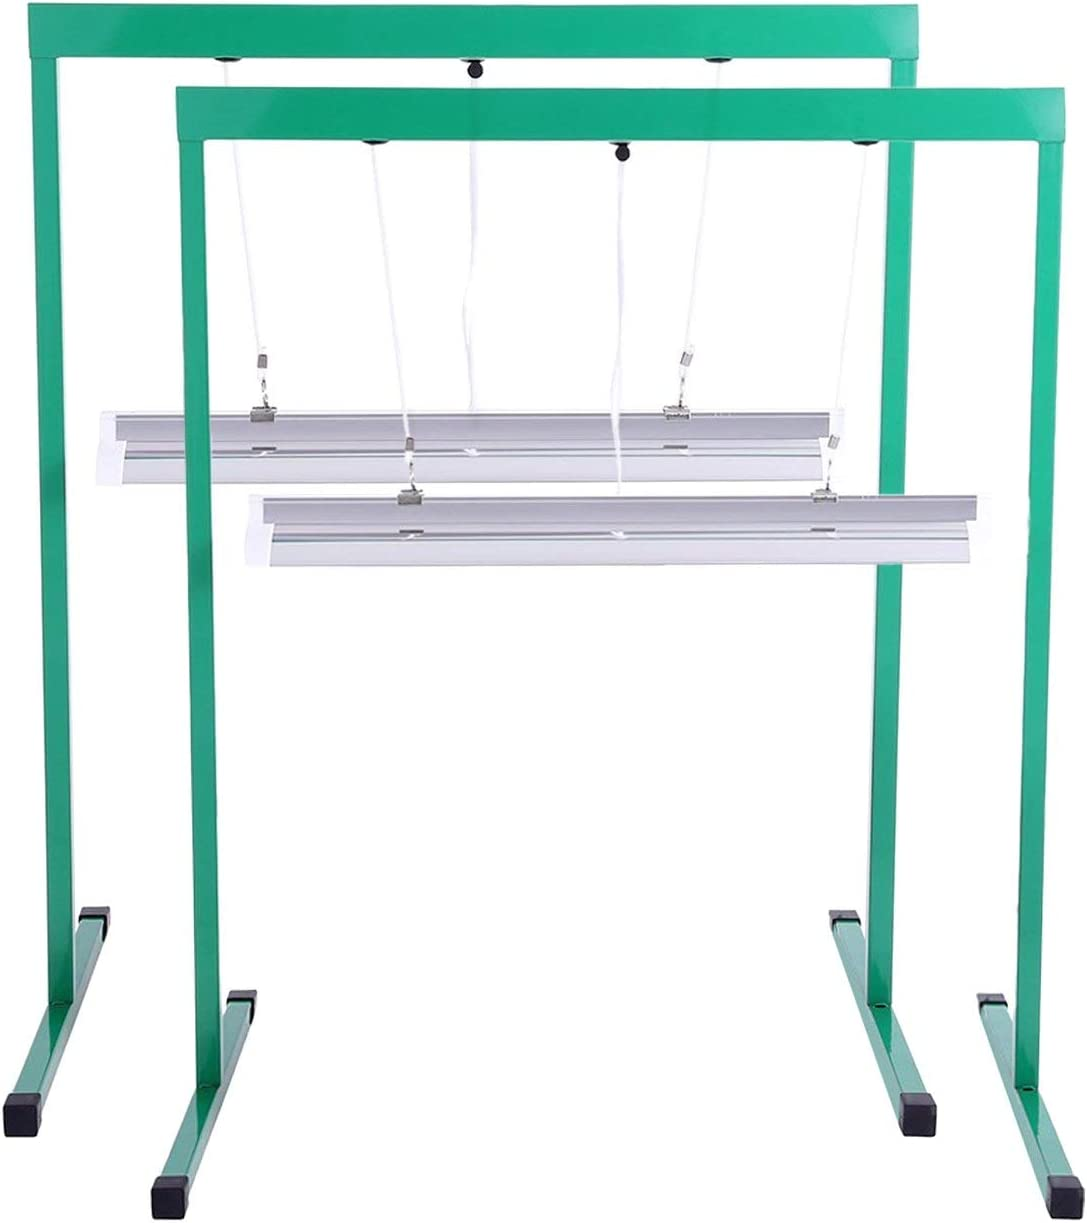 iPower 2-Pack 24W 2 Feet T5 Fluorescent Grow Light Stand Rack for Seed Starting Plant Growing, 6400K